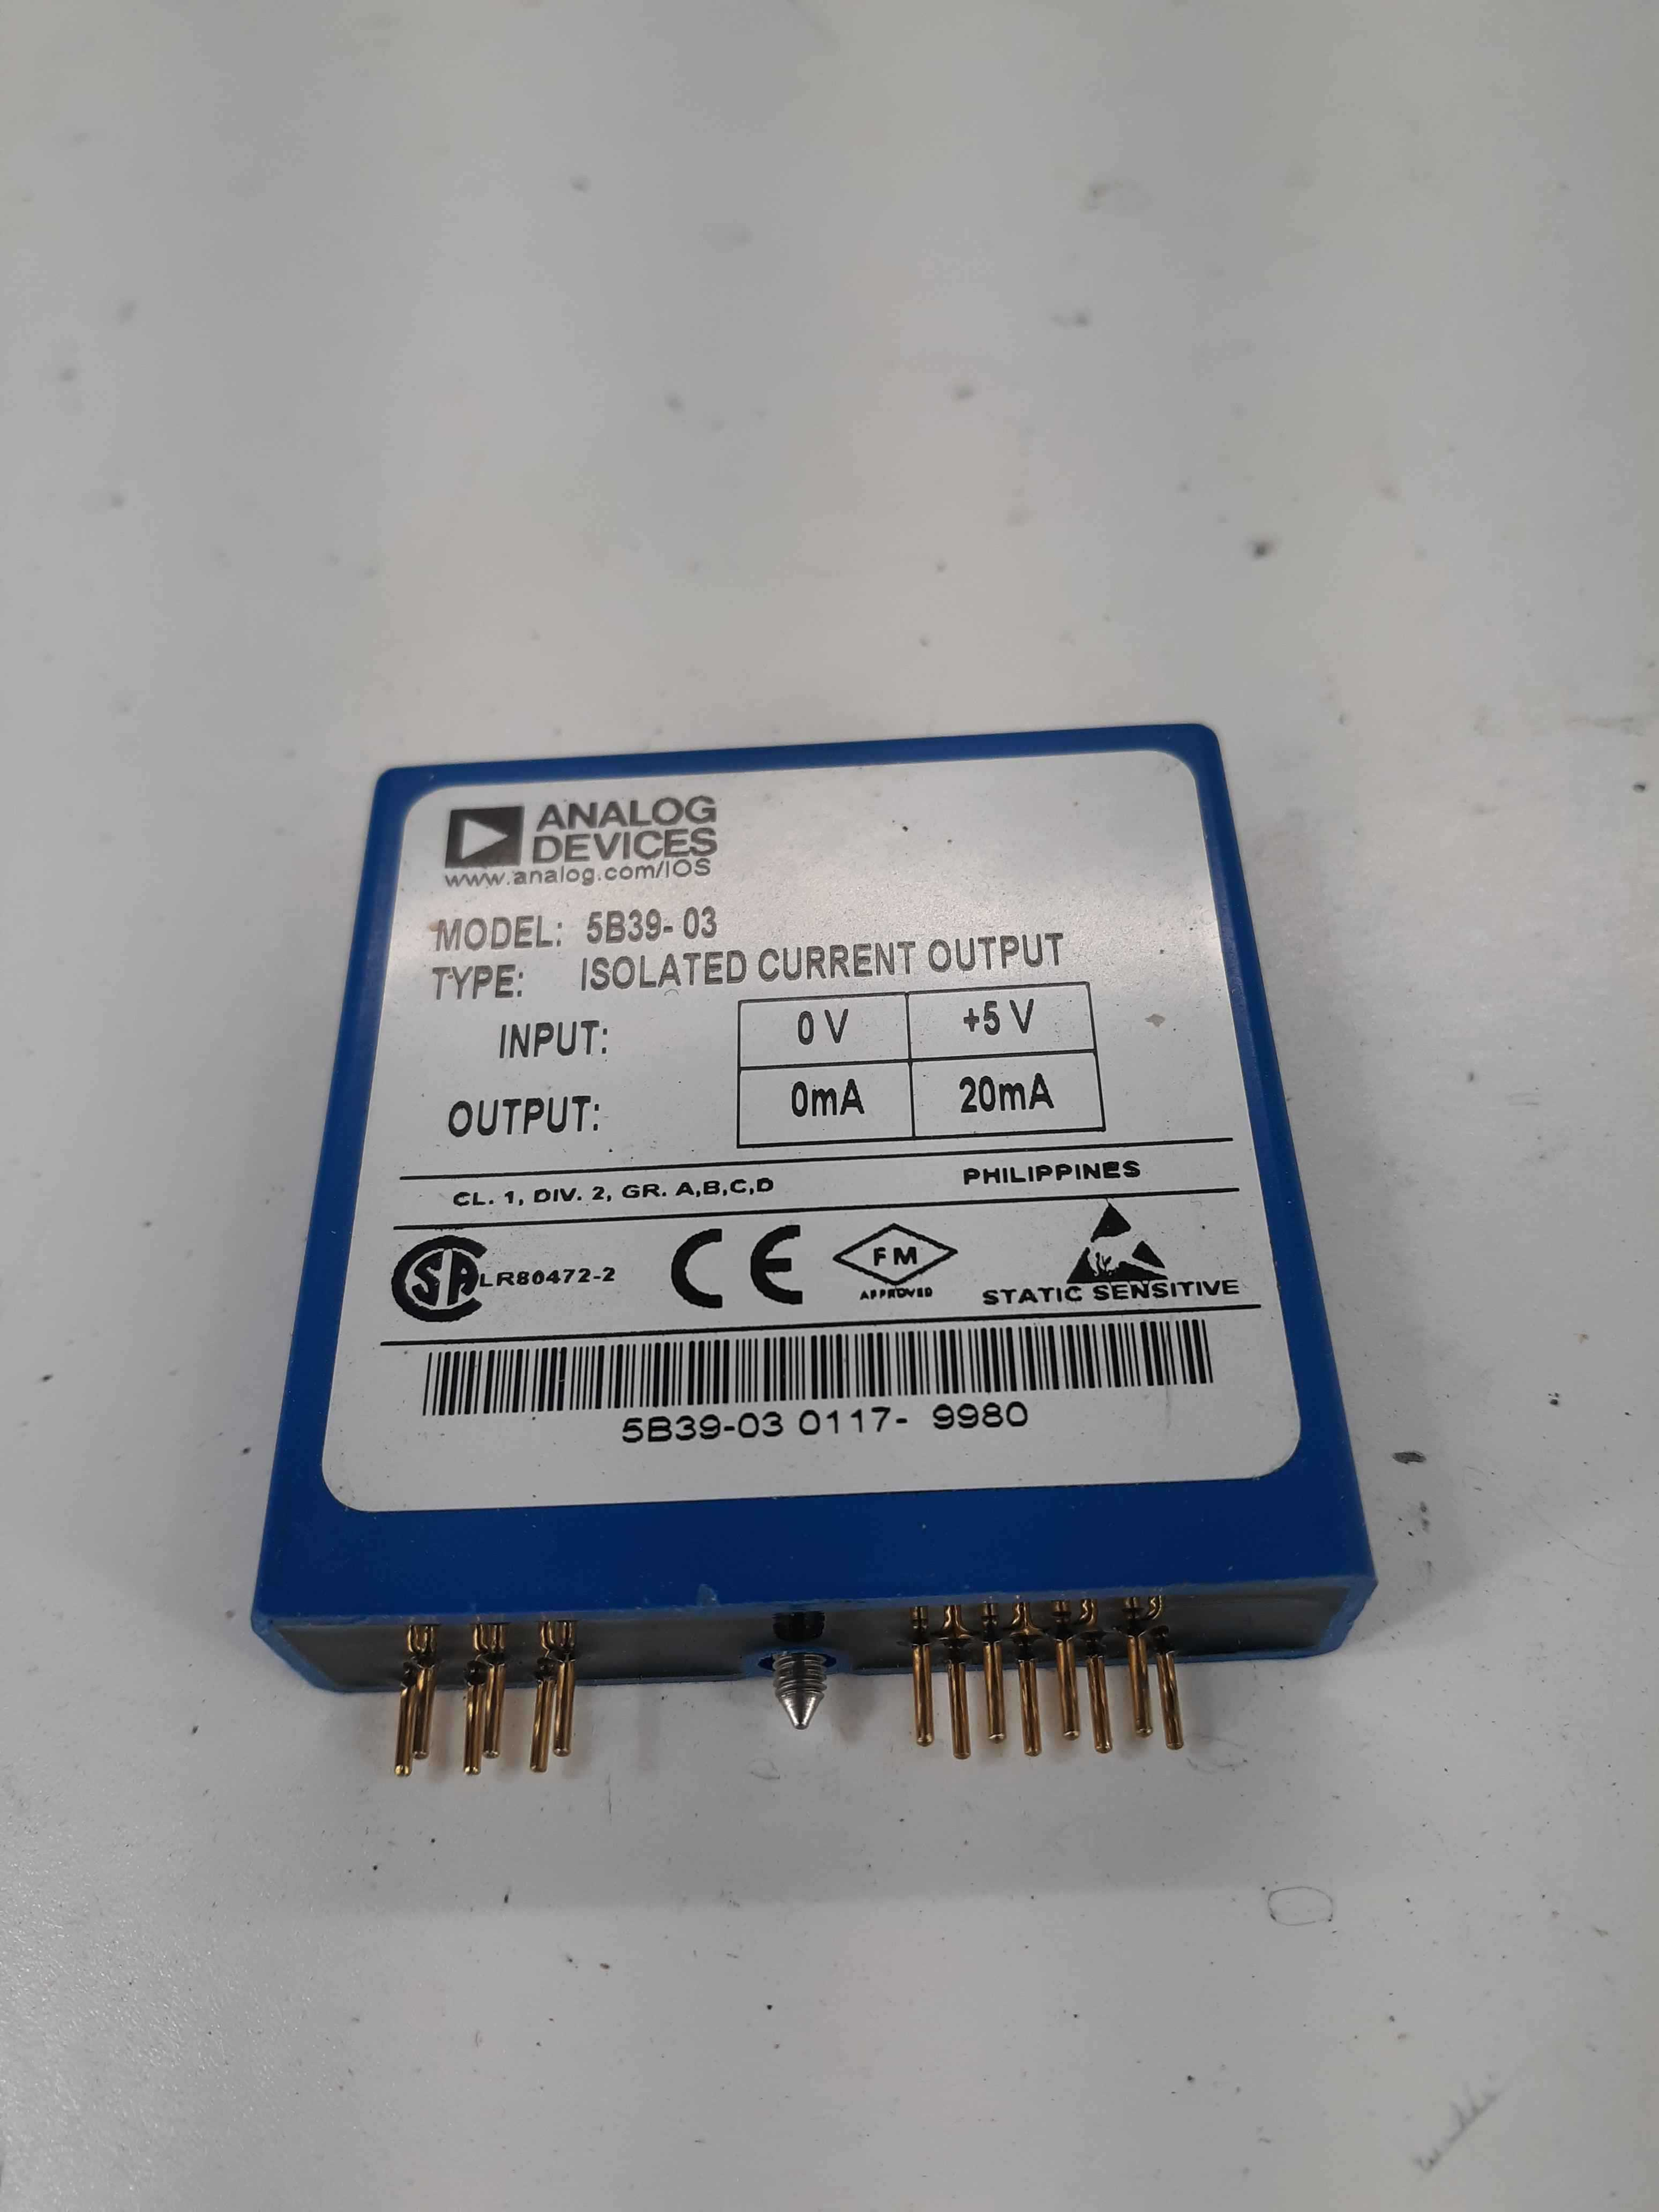 Analog Devices 5B39 03 Isolated Current Output 0-5v 0-20mA AD 5B39-03